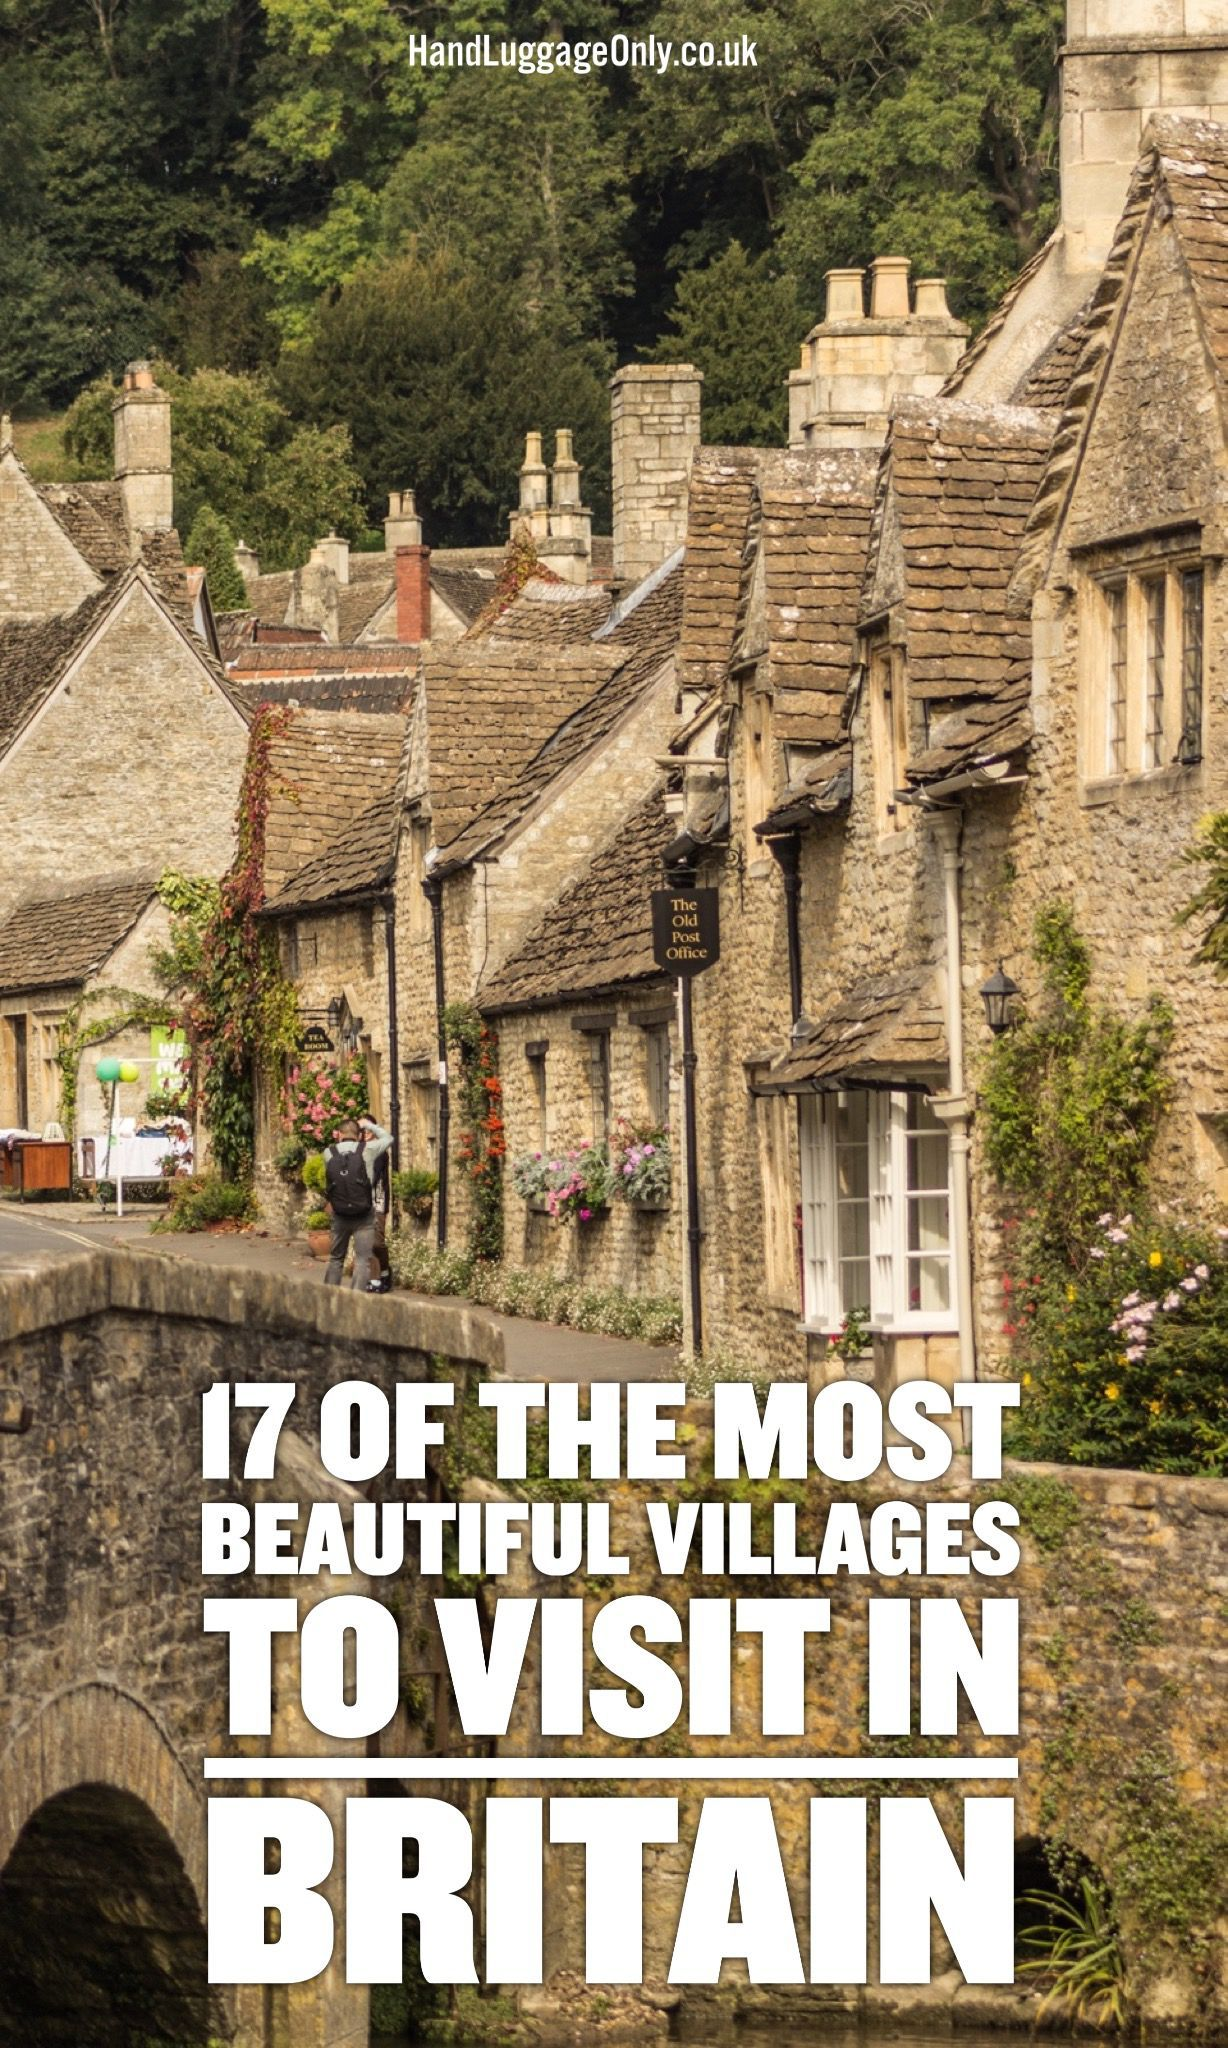 17 Of The Most Beautiful Villages To Visit In Britain All Things Travel Pinterest Hand